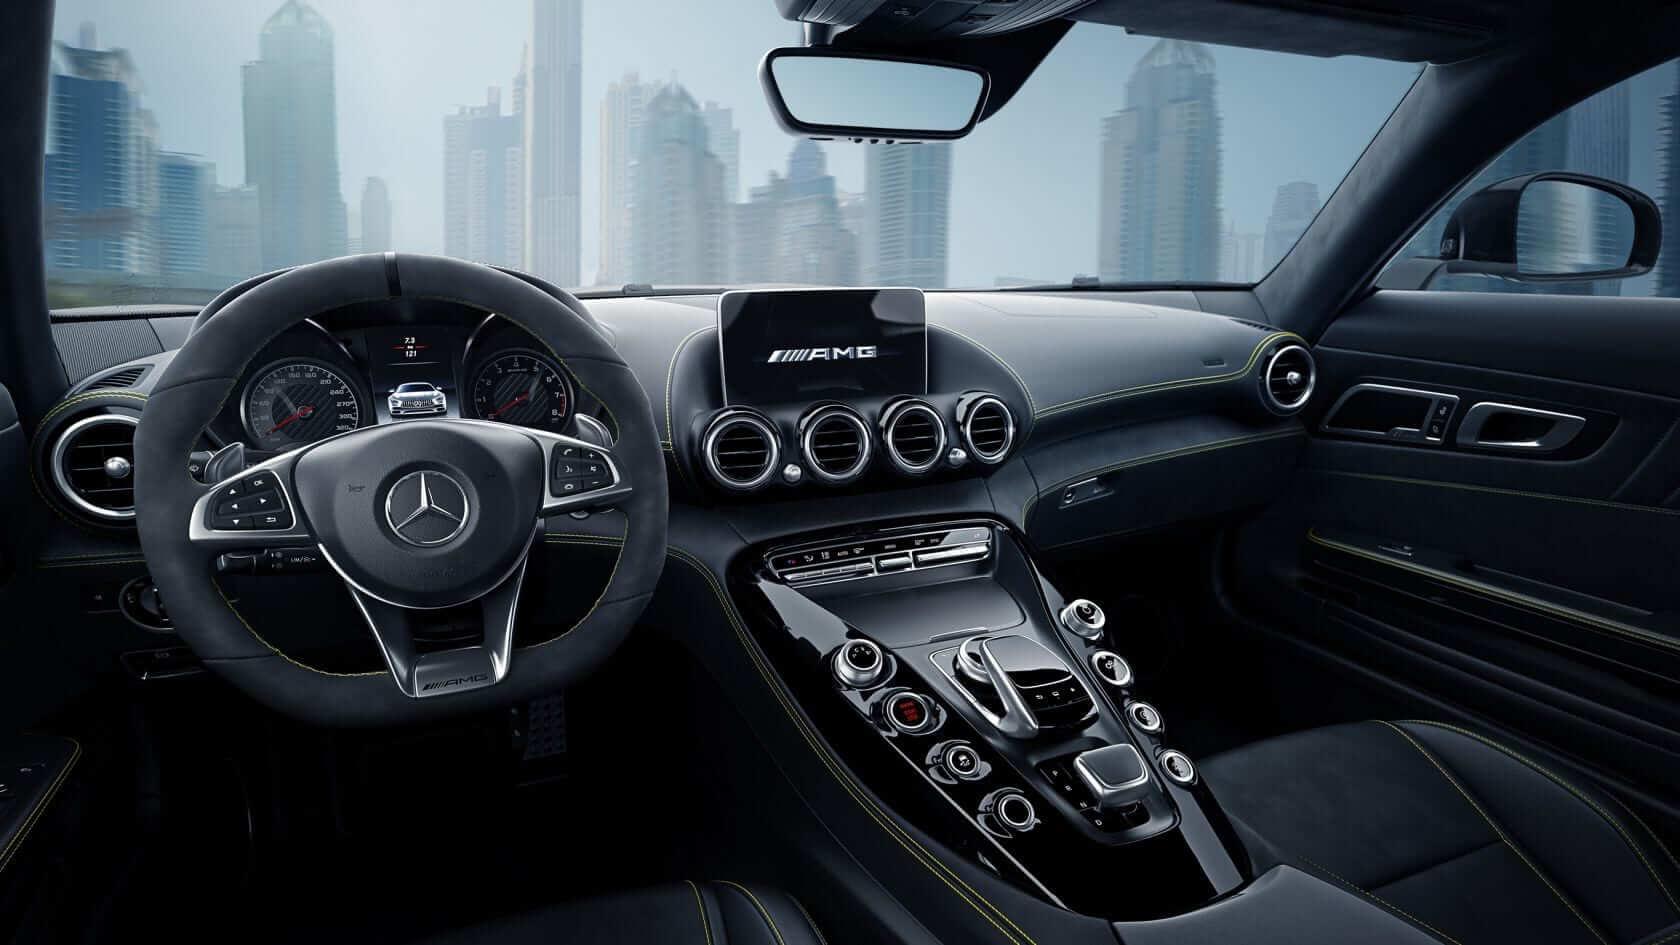 Mercedes AMG GT dashboard